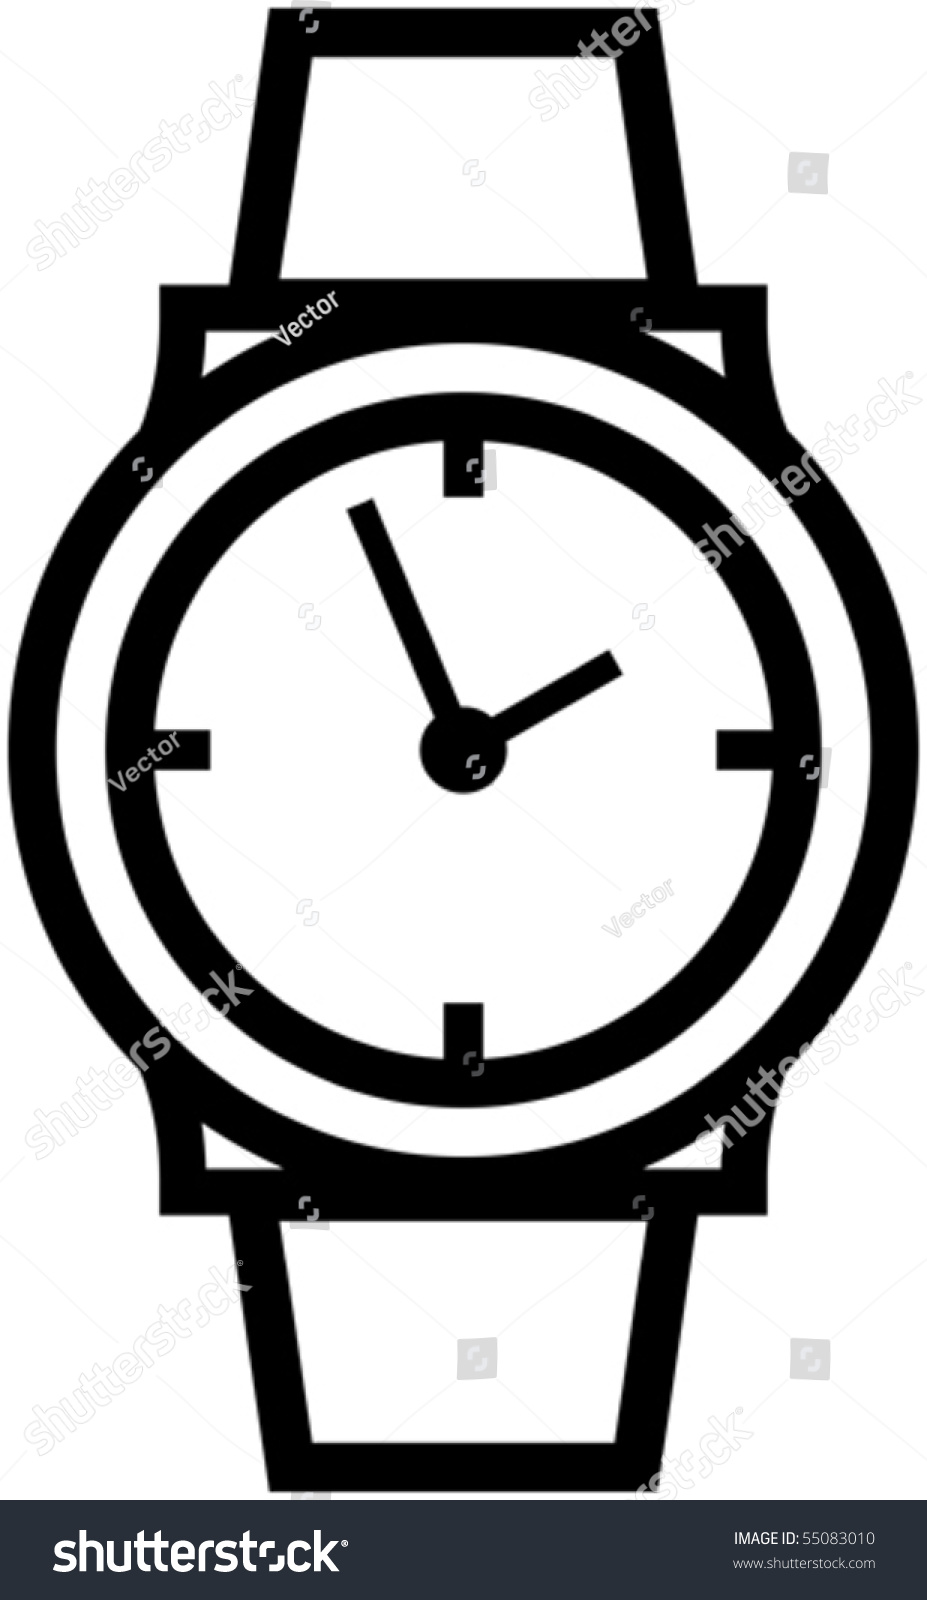 watch vector illustration stock vector royalty free 55083010 rh shutterstock com watch victorious watch victorious